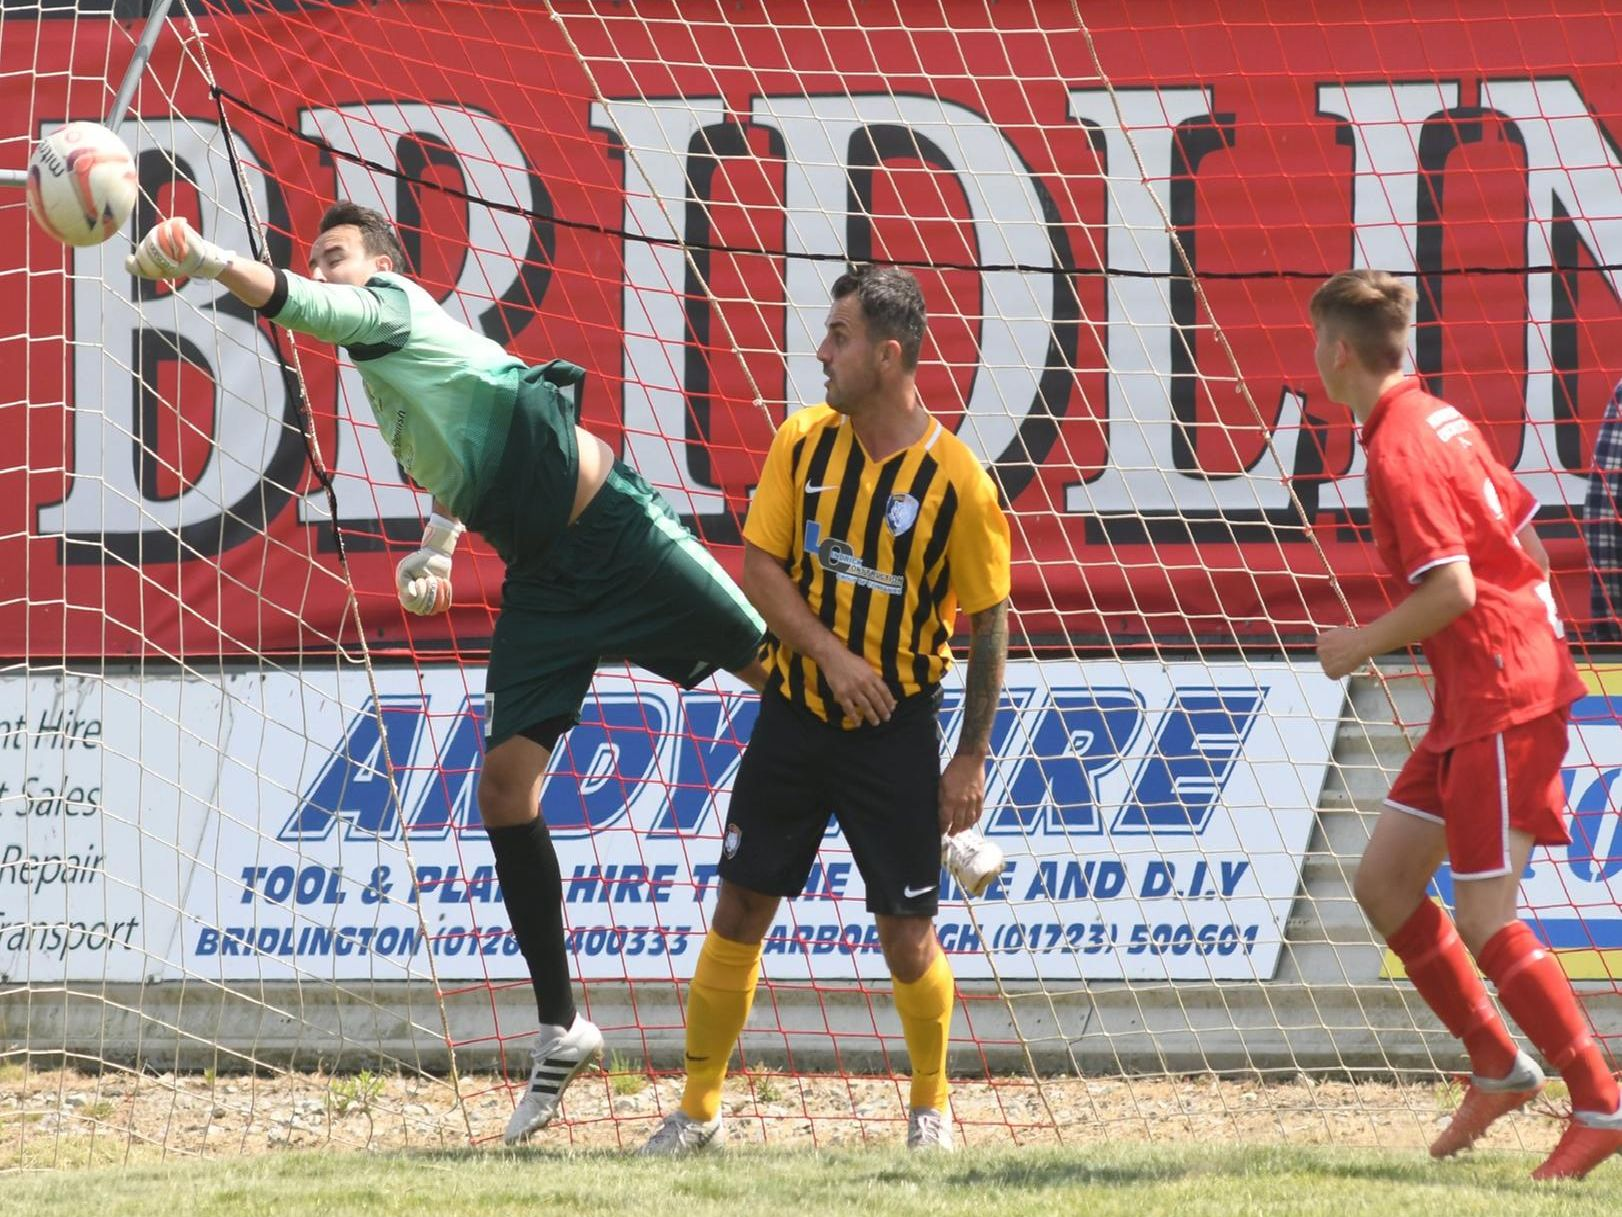 Brid Town v Worksop'''PHOTOS BY DOM TAYLOR